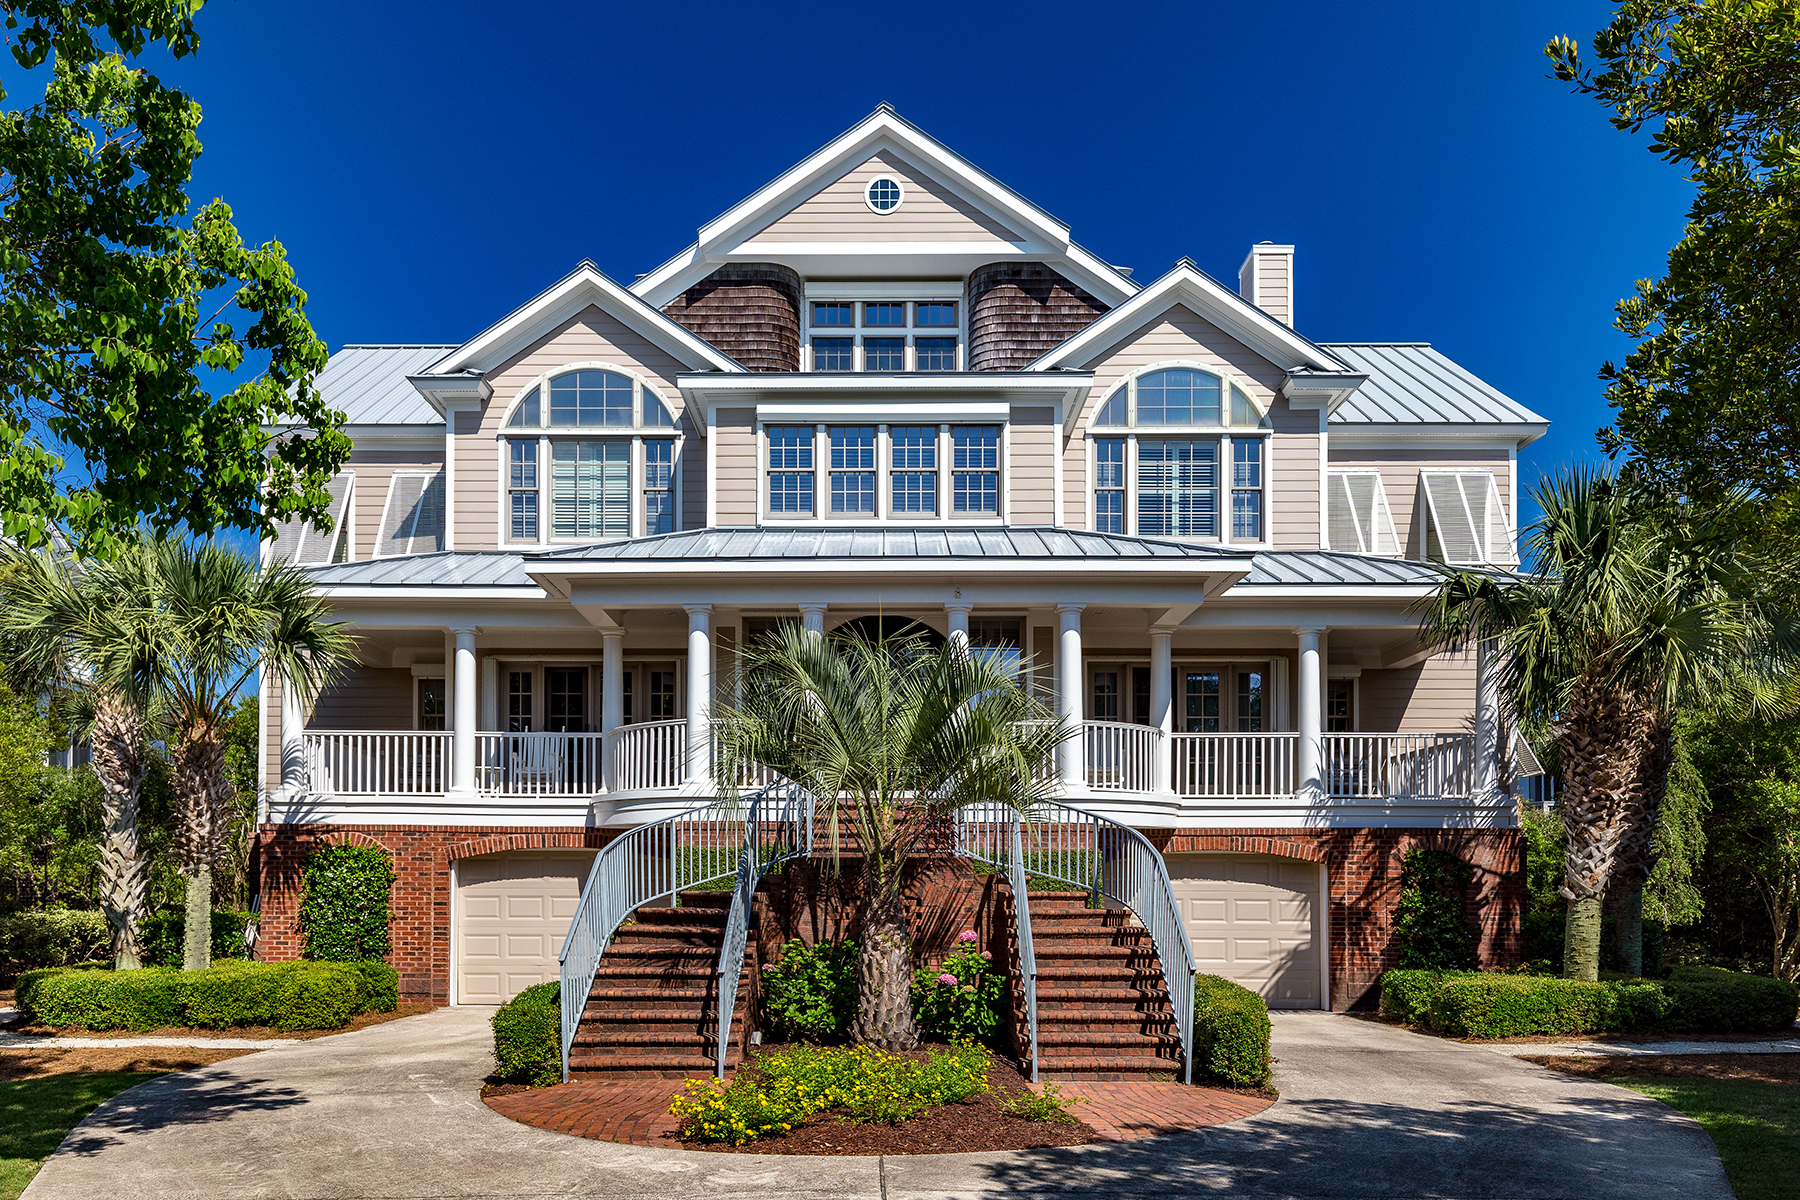 Single Family Home for Sale at 417 Beach Bridge Rd Pawleys Island, South Carolina, 29585 United States